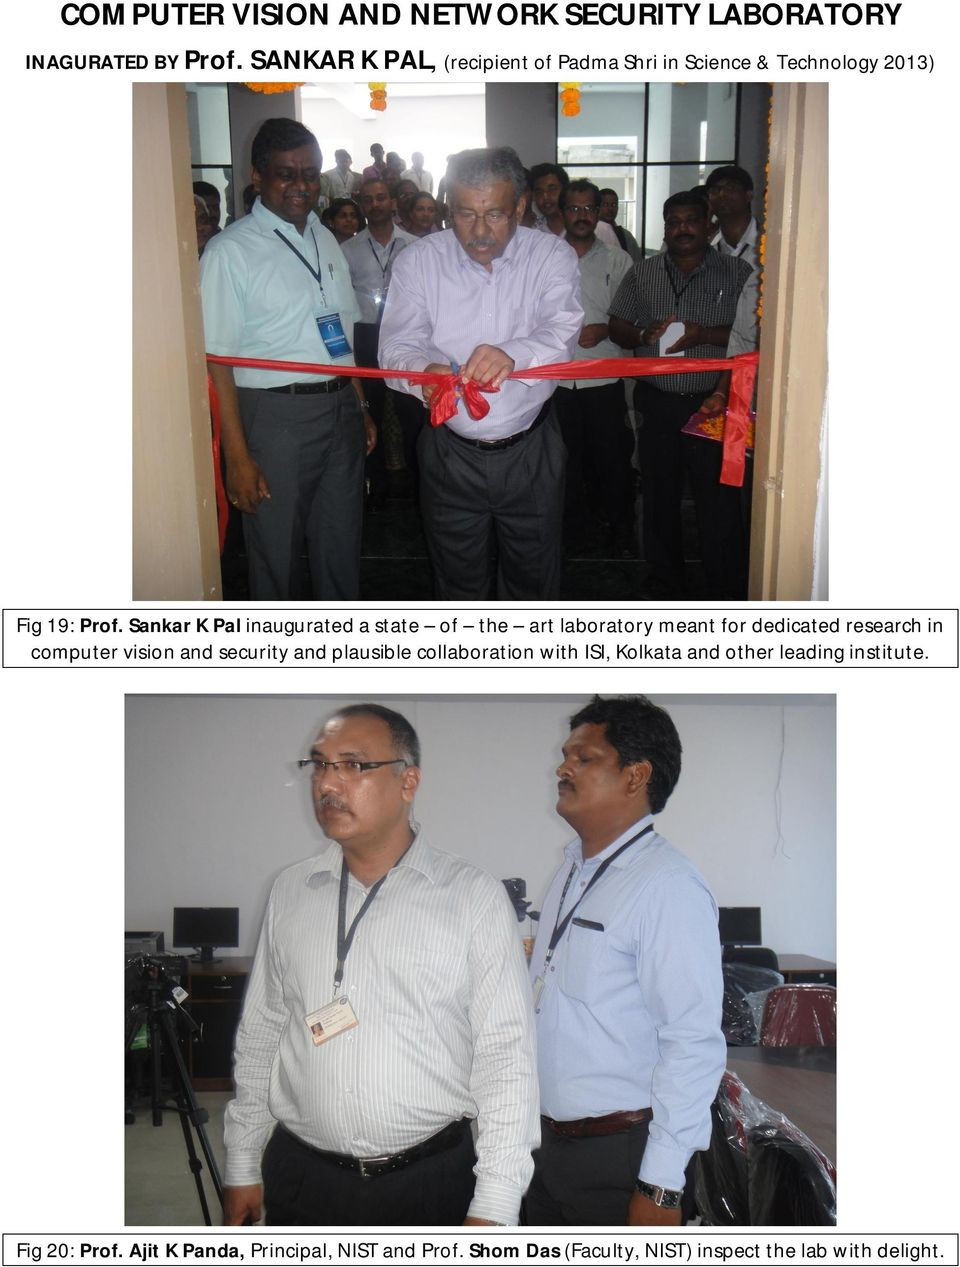 Sankar K Pal inaugurated a state of the art laboratory meant for dedicated research in computer vision and